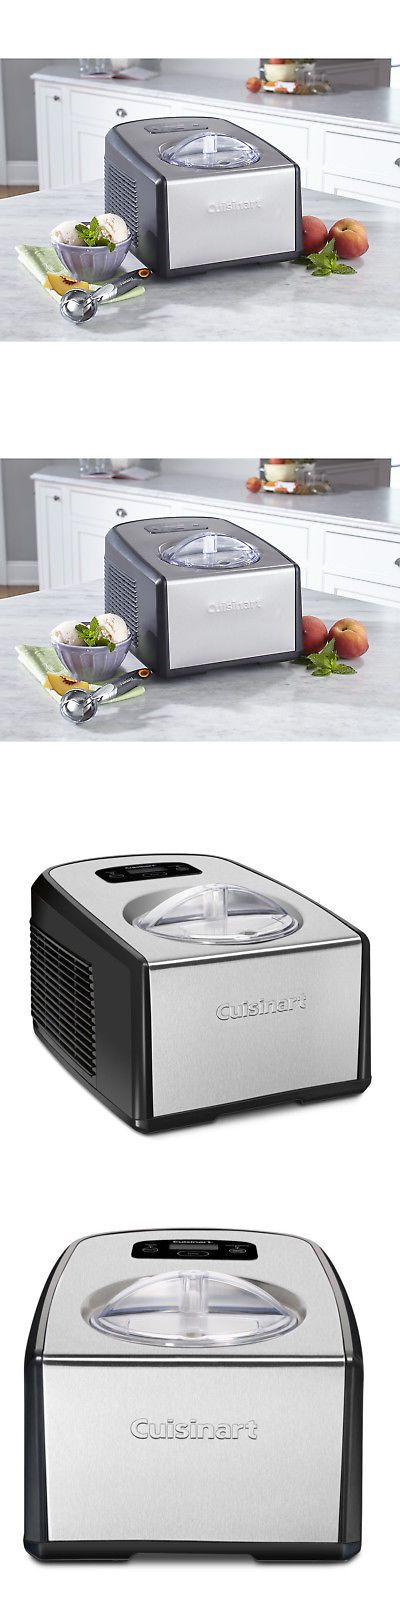 Ice Cream Makers 20676 Cuisinart Ice 100 Compresso Ice Cream And Gelato Maker Buy It Now Only 234 49 On Ebay Gelato Maker Ice Cream Makers Gelato